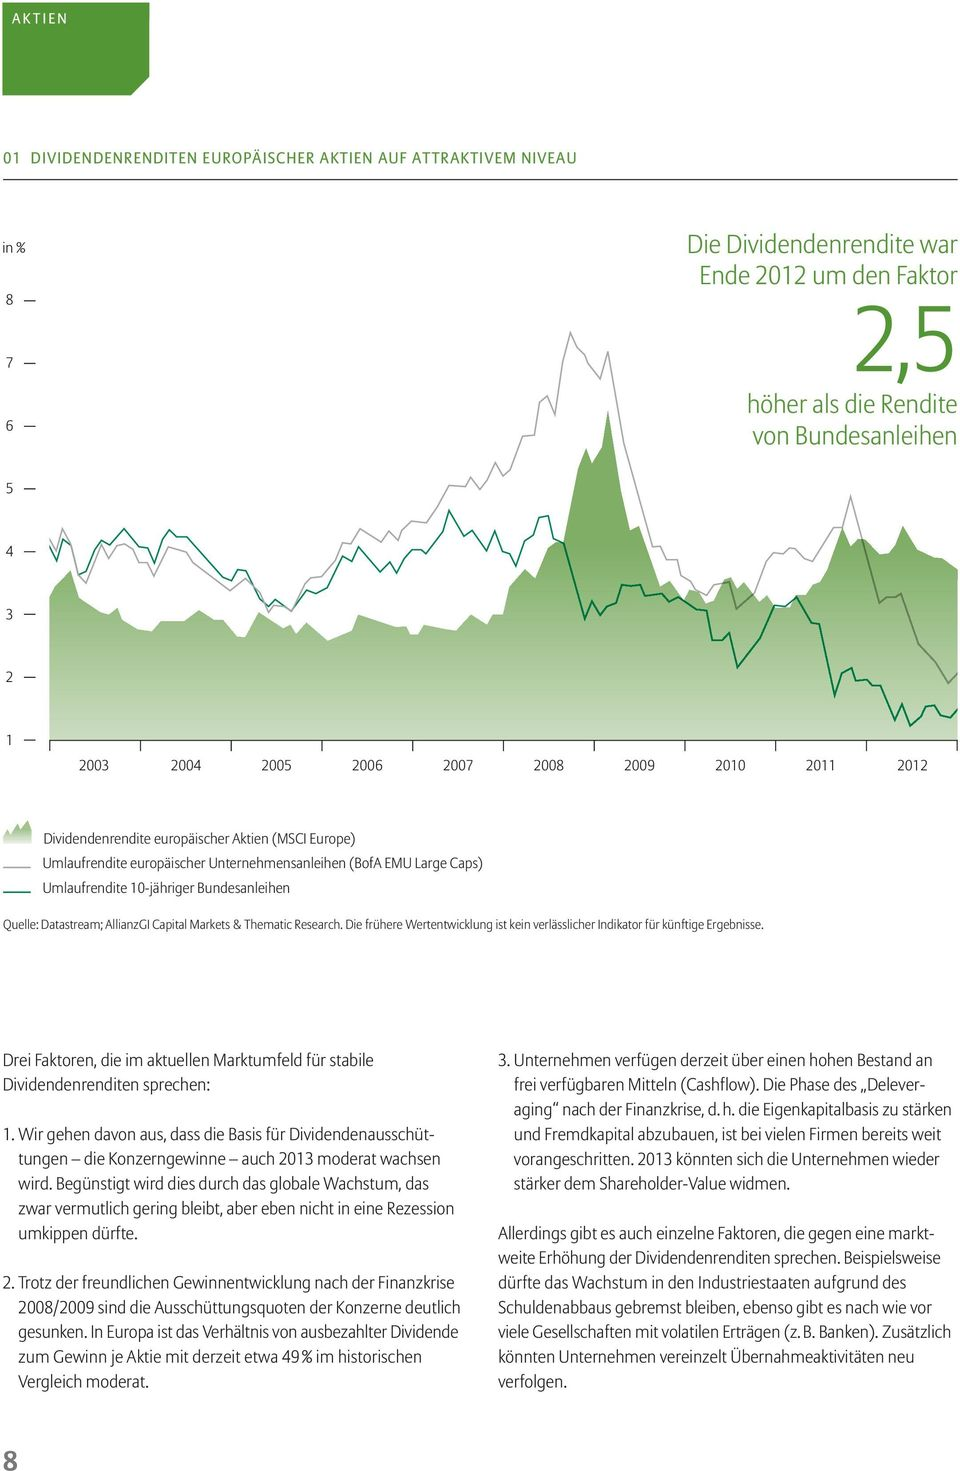 Bundesanleihen Quelle: Datastream; AllianzGI Capital Markets & Thematic Research. Die frühere Wertentwicklung ist kein verlässlicher Indikator für künftige Ergebnisse.